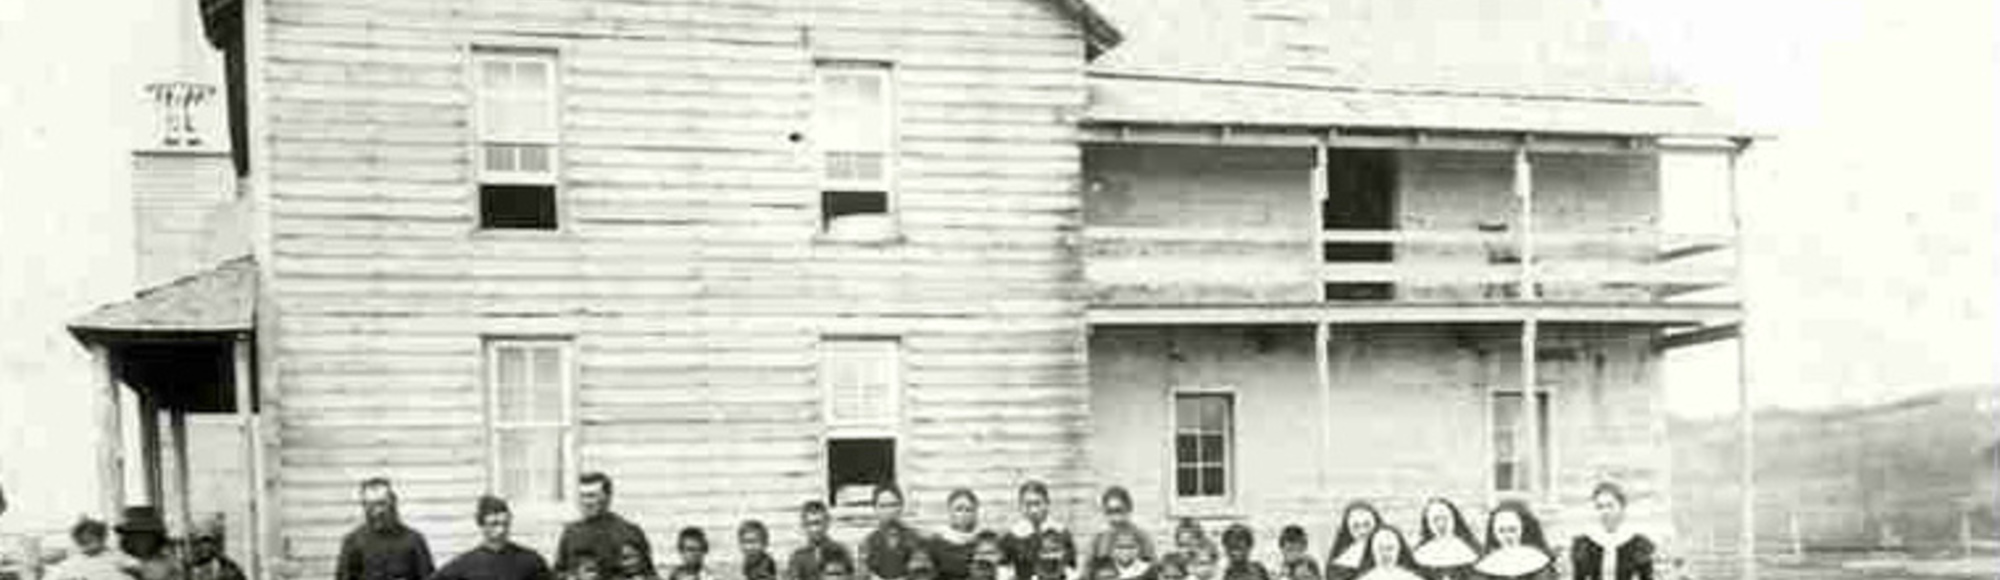 The Wildly Depressing History of Canadian Residential Schools